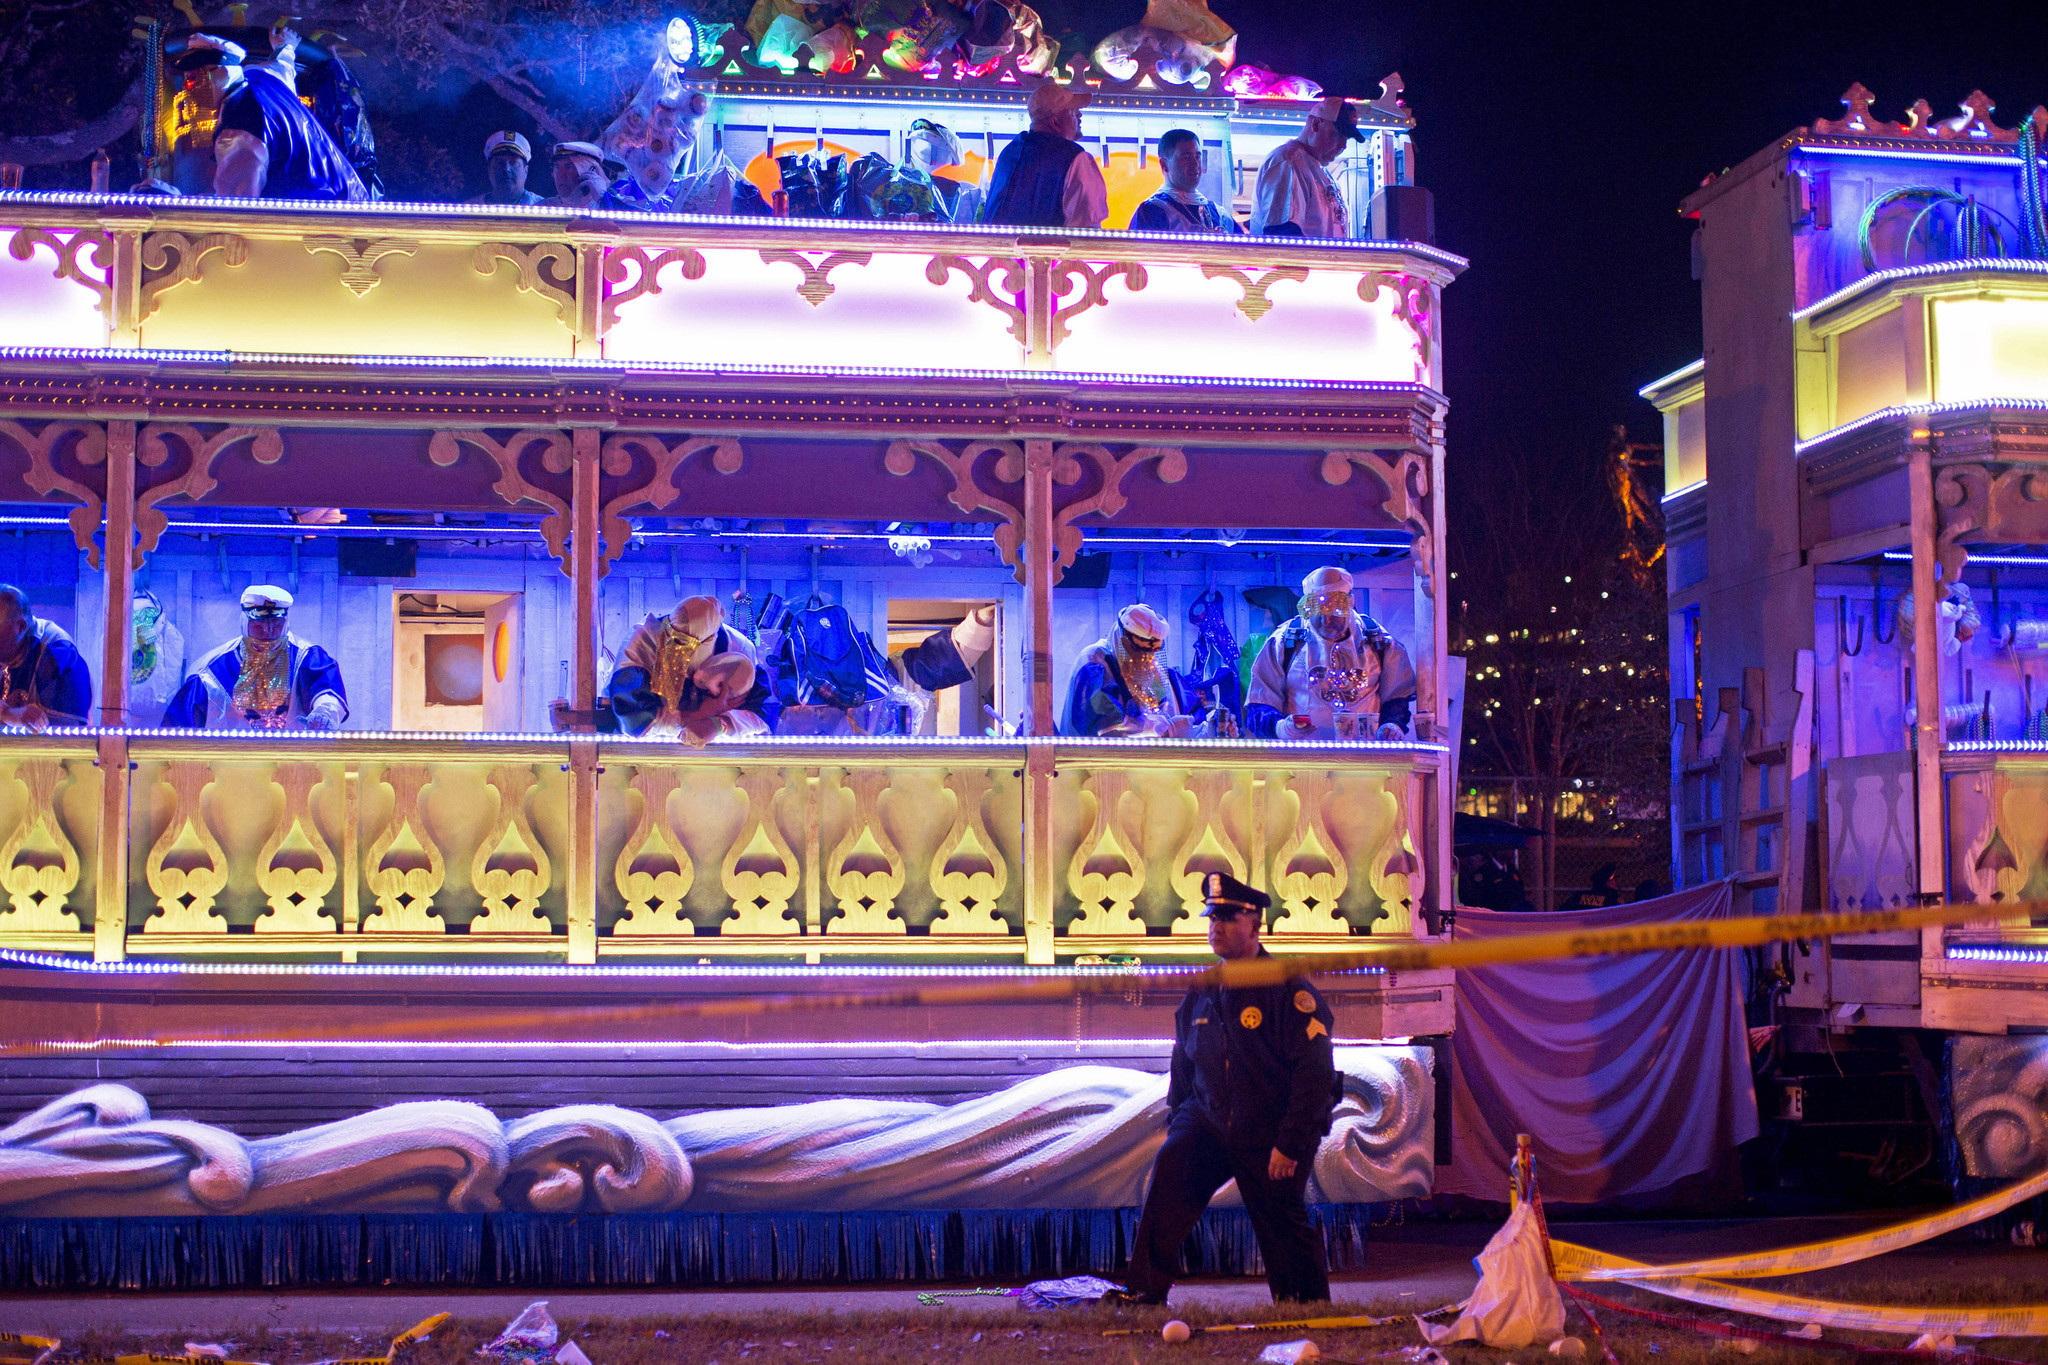 Second person killed by Mardi Gras float, New Orleans bans tandems during parade